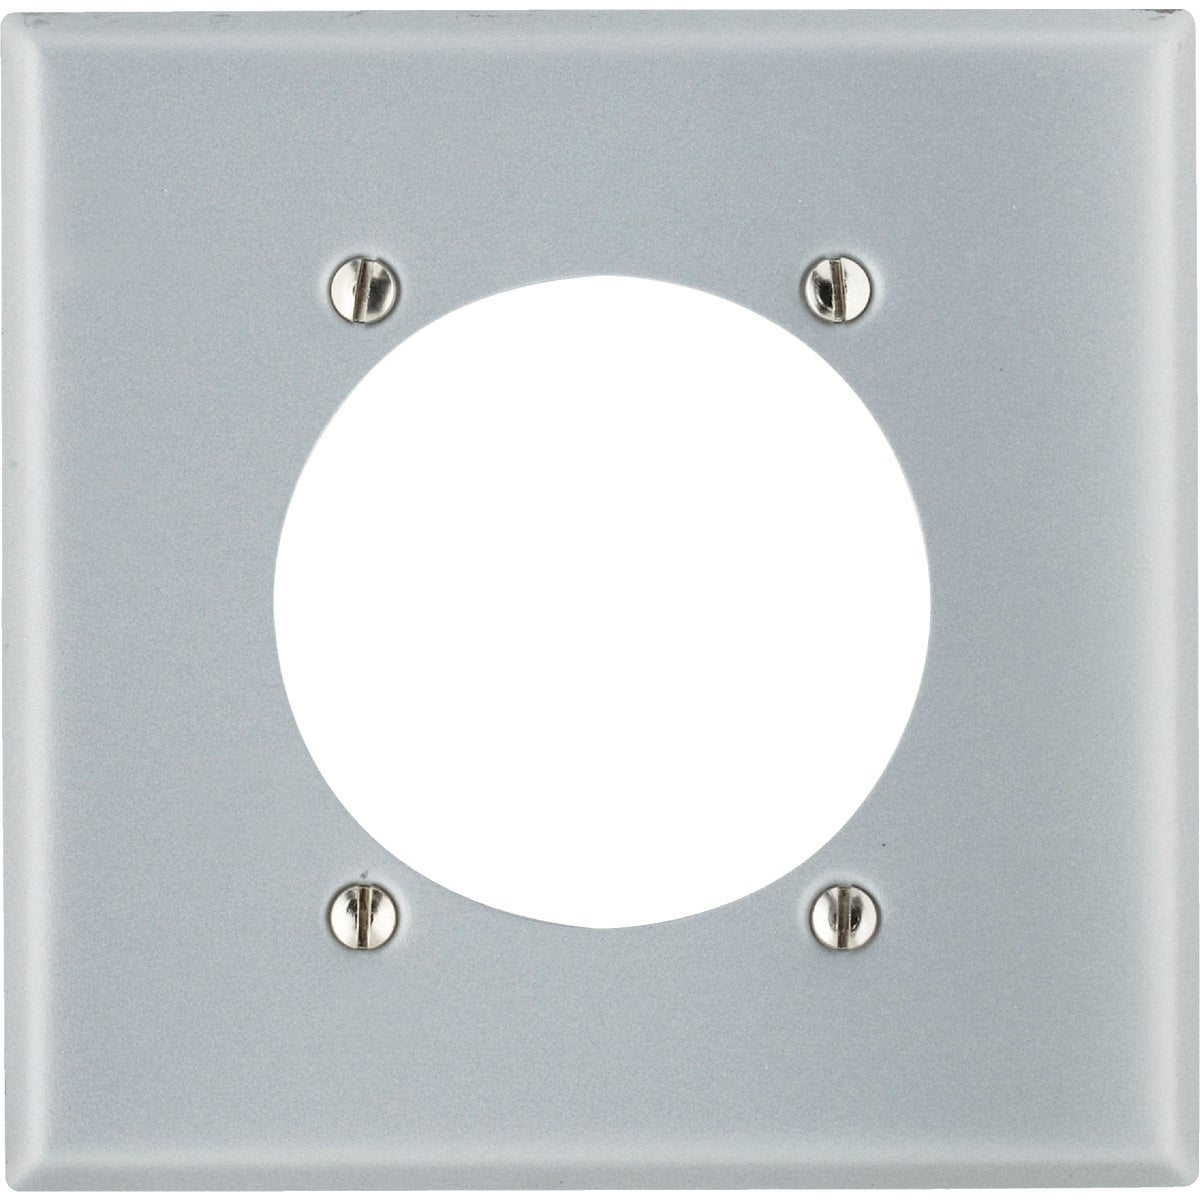 ALUM RANG/DRY WALL PLATE - 001-0S701-0GY by Leviton Mfg Co